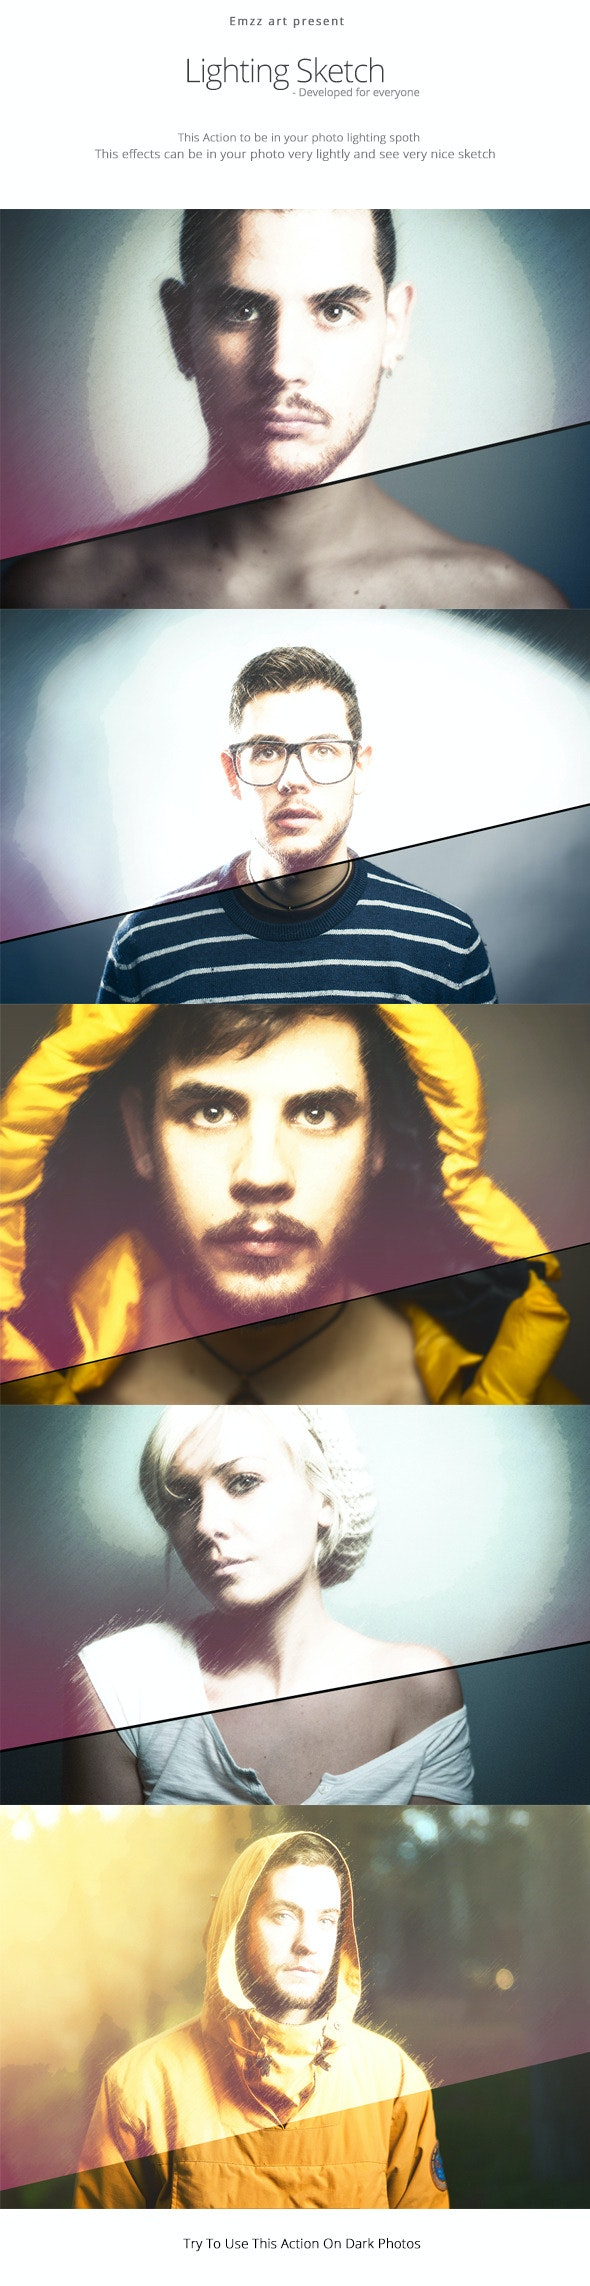 Lighting Sketch Action - Photo Effects Actions